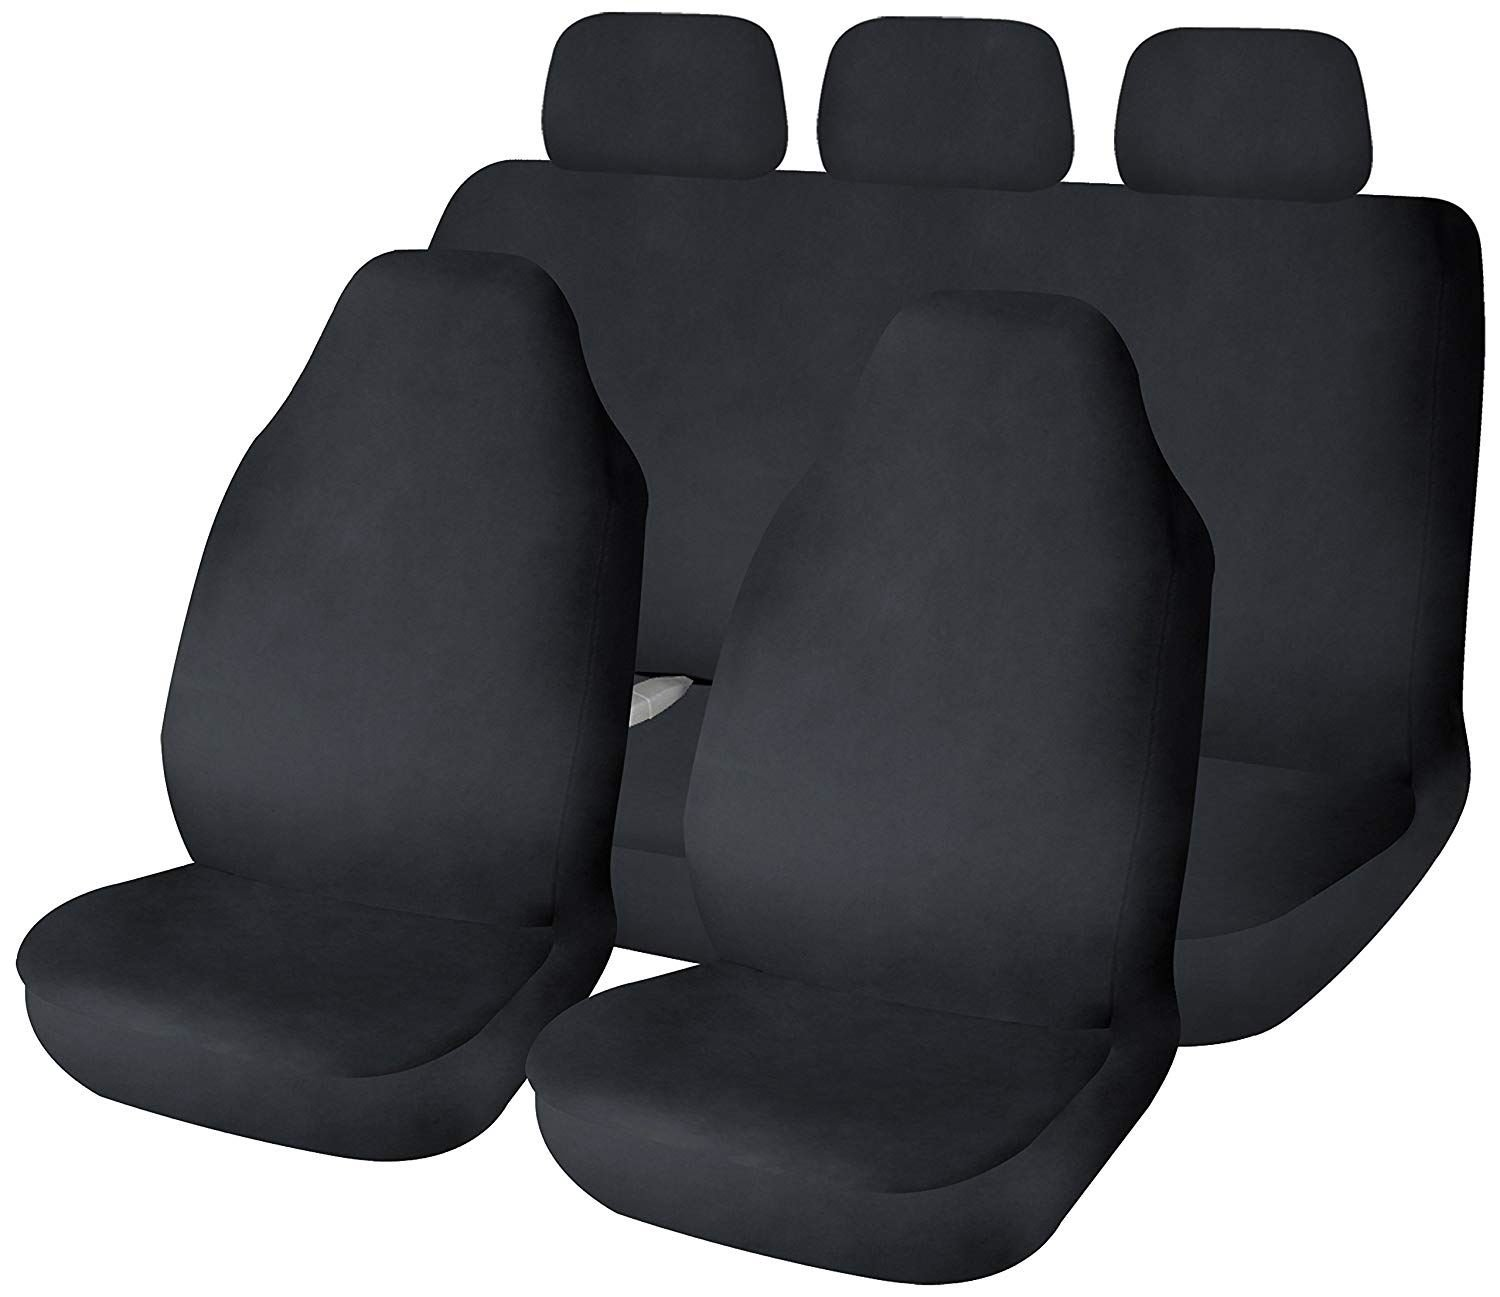 UKB4C Waterproof Black Full Set Front /& Rear Car Seat Covers for C-Max All Years